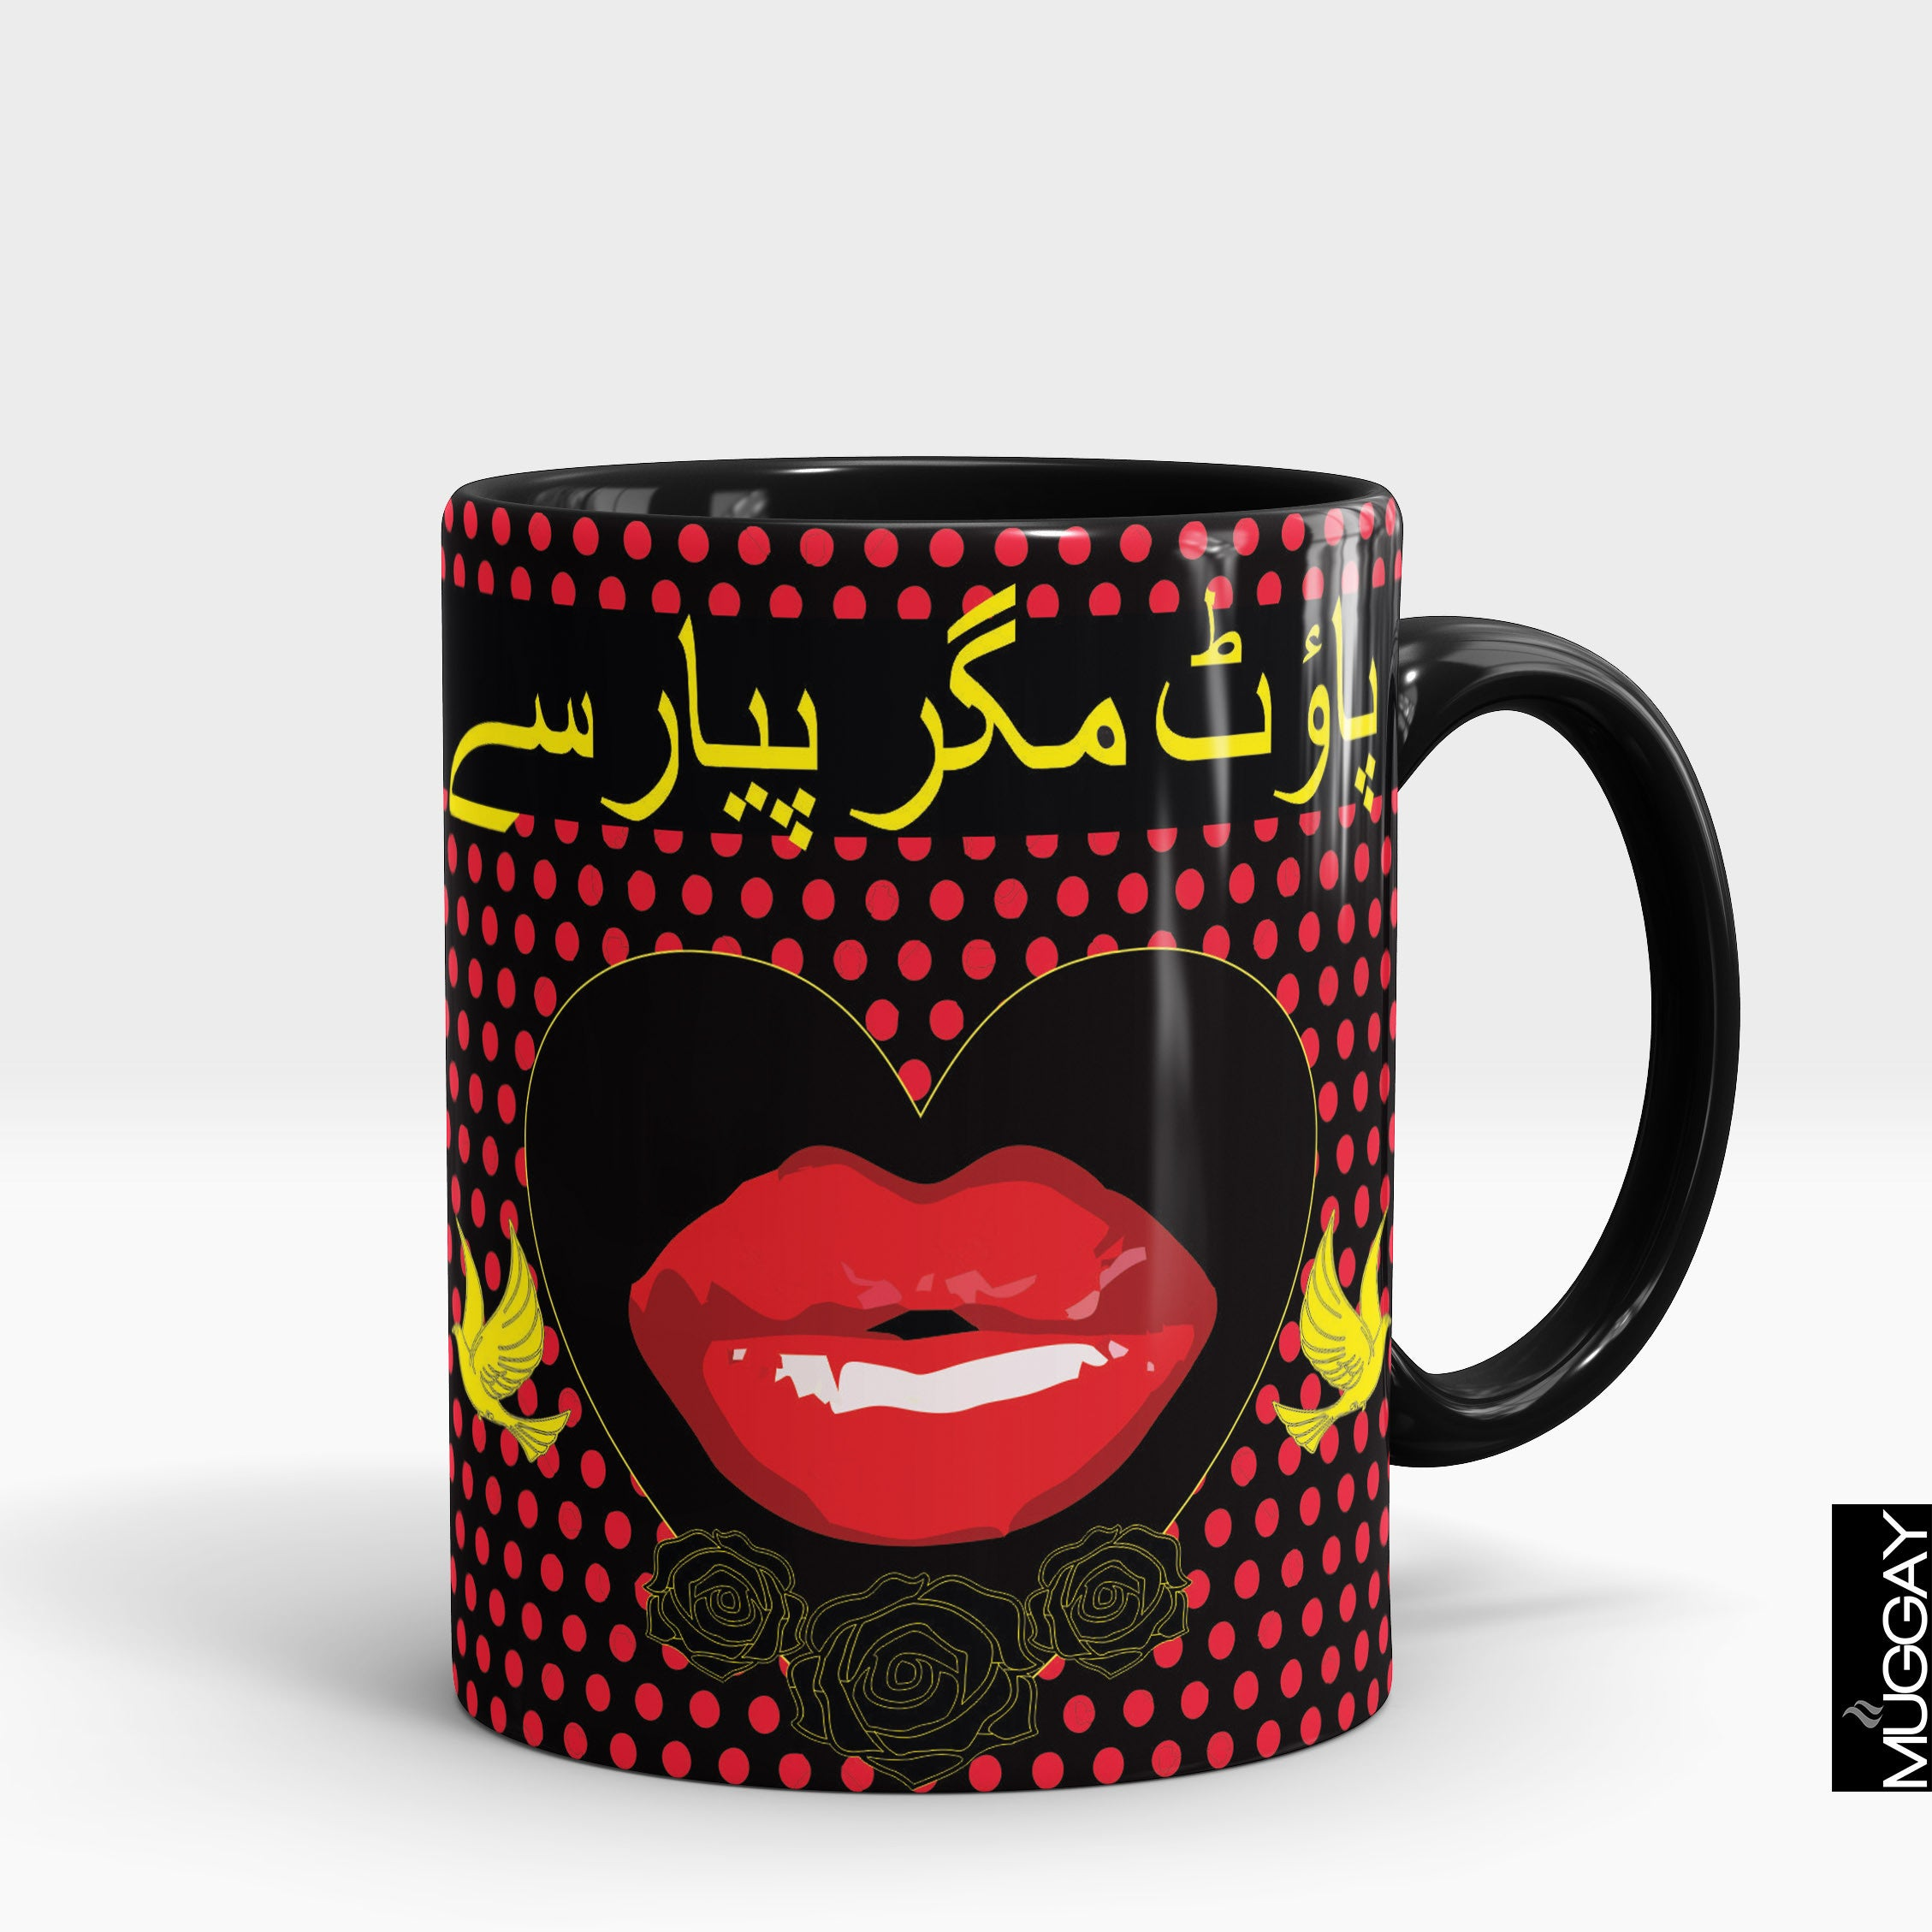 Desi funny Mugs4 - Muggay.com - Mugs - Printing shop - truck Art mugs - Mug printing - Customized printing - Digital printing - Muggay